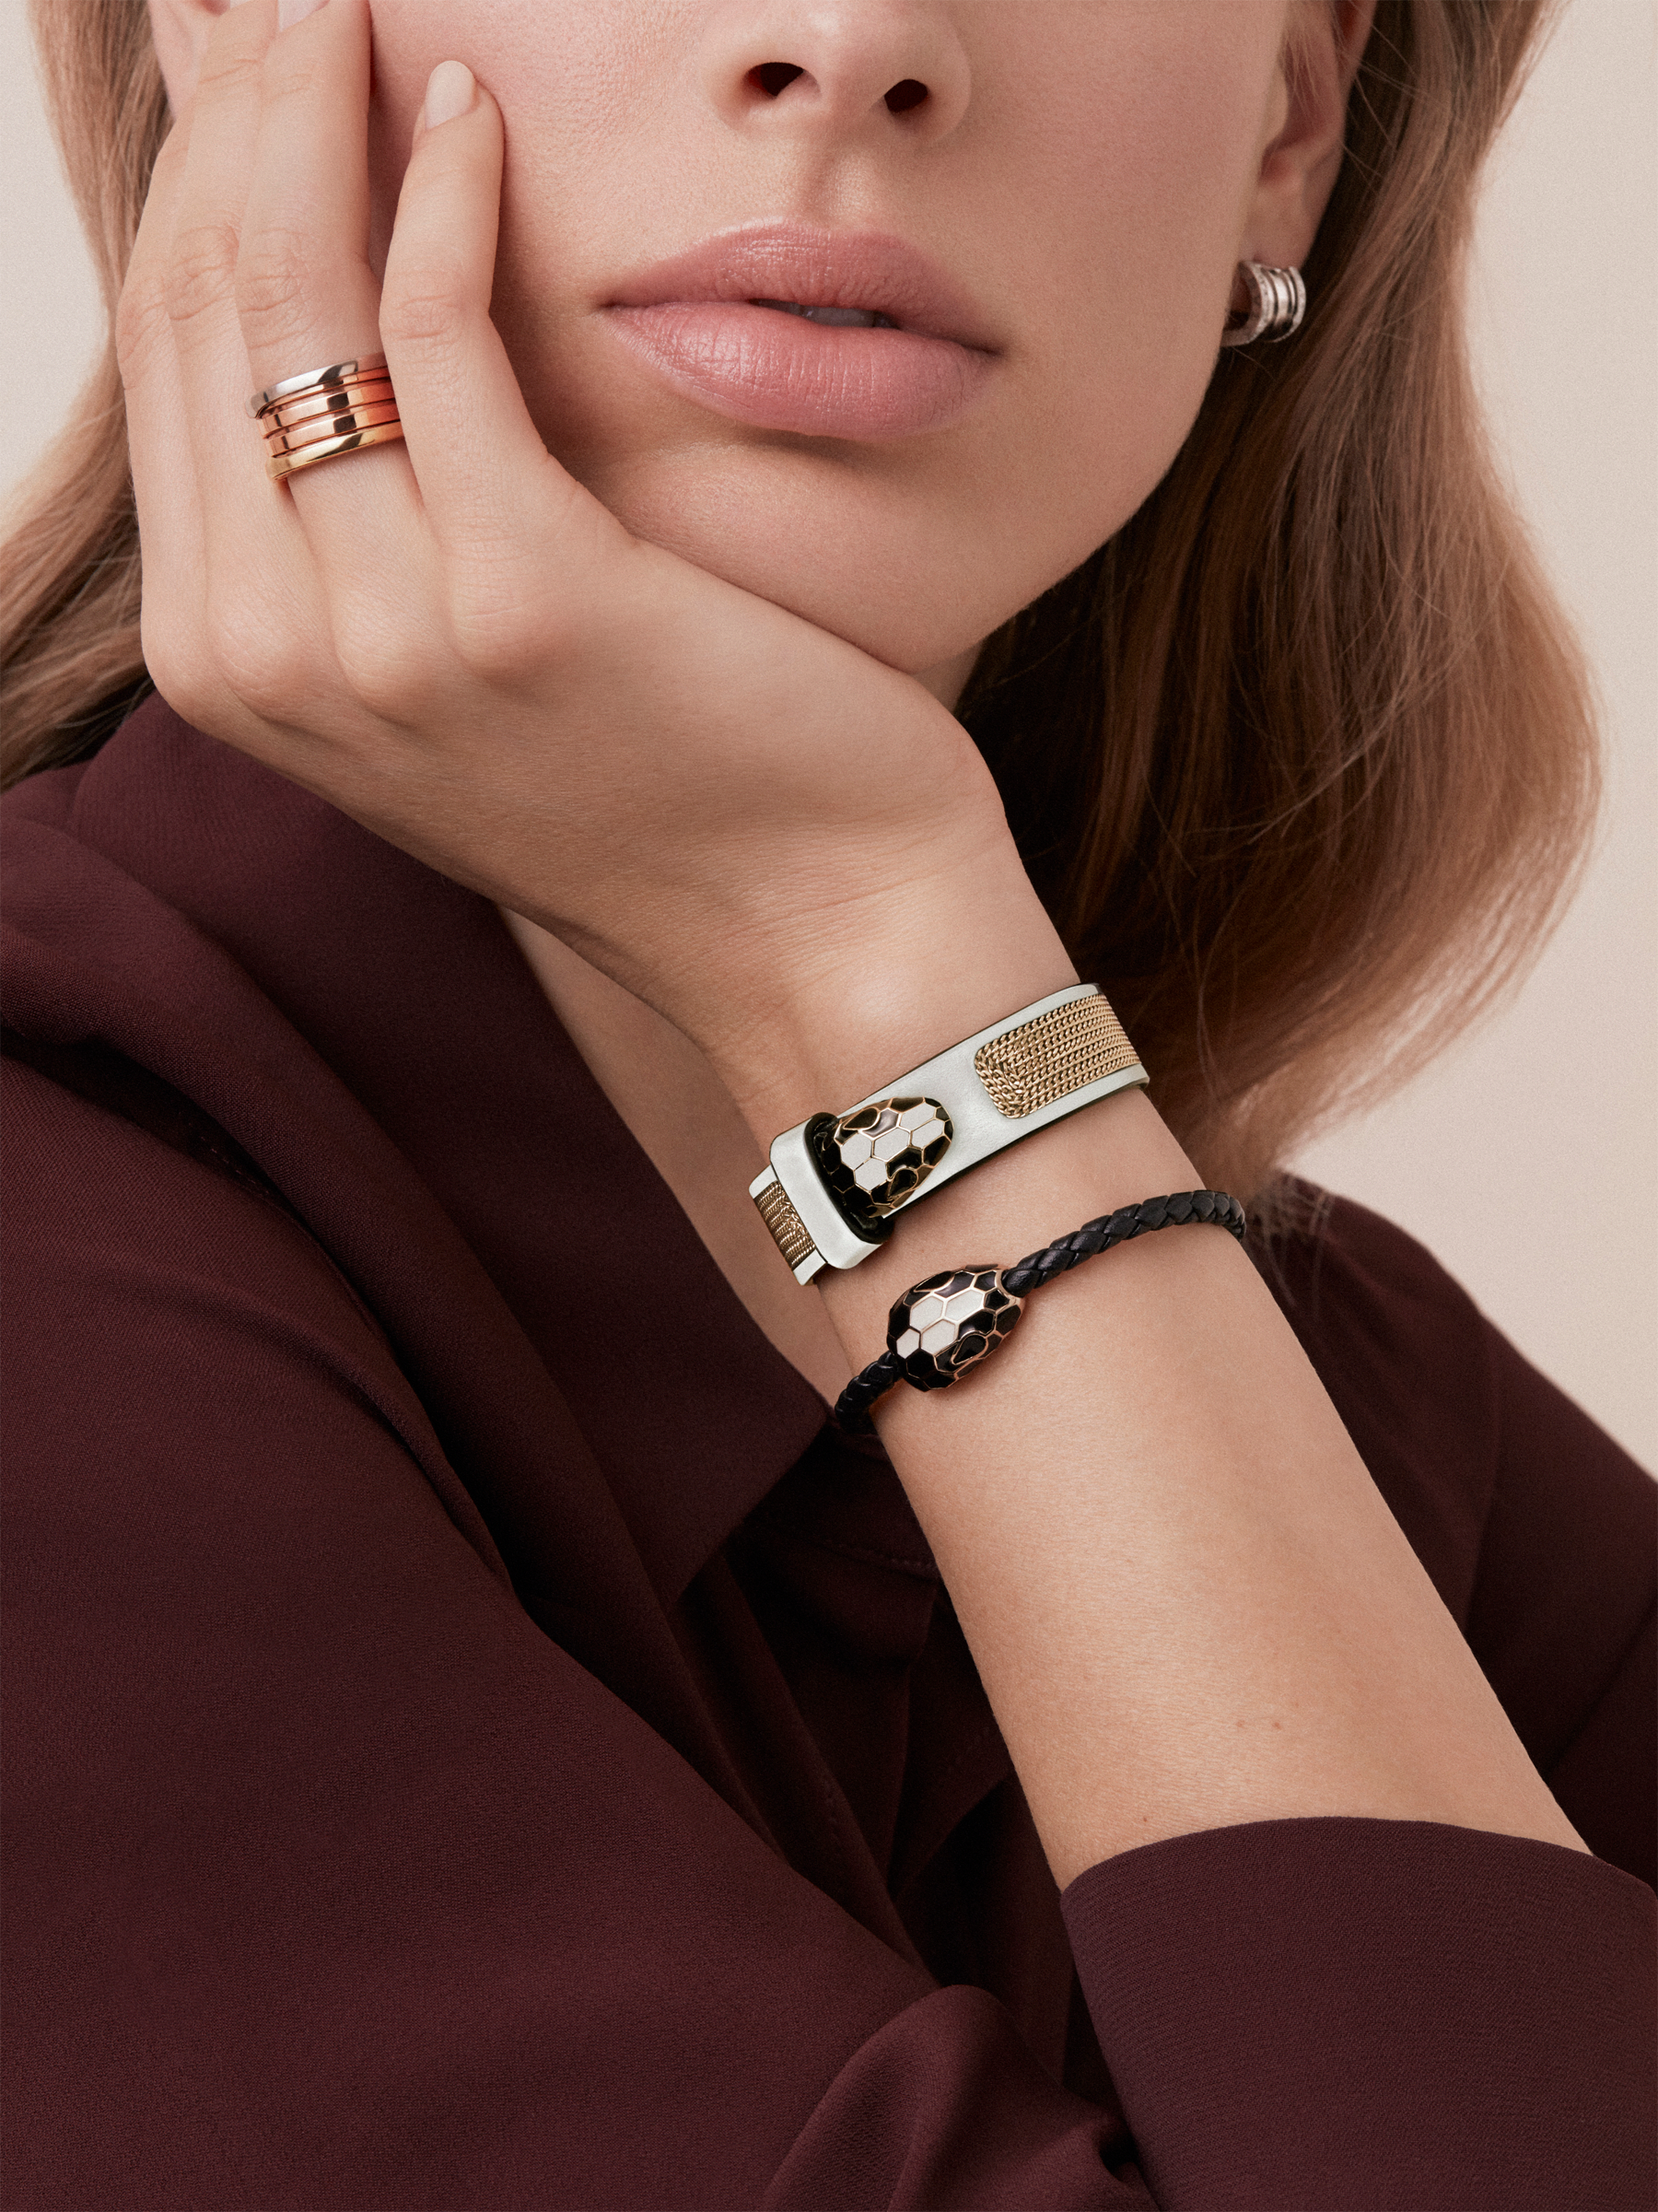 Serpenti Forever multi-coiled bracelet in mint calf leather, with light gold plated brass hardware. Iconic contraire snakehead décor in black and white agate enamel, with emerald green enamel eyes. BRACLT-MC-SERP-GIFTBOX image 2